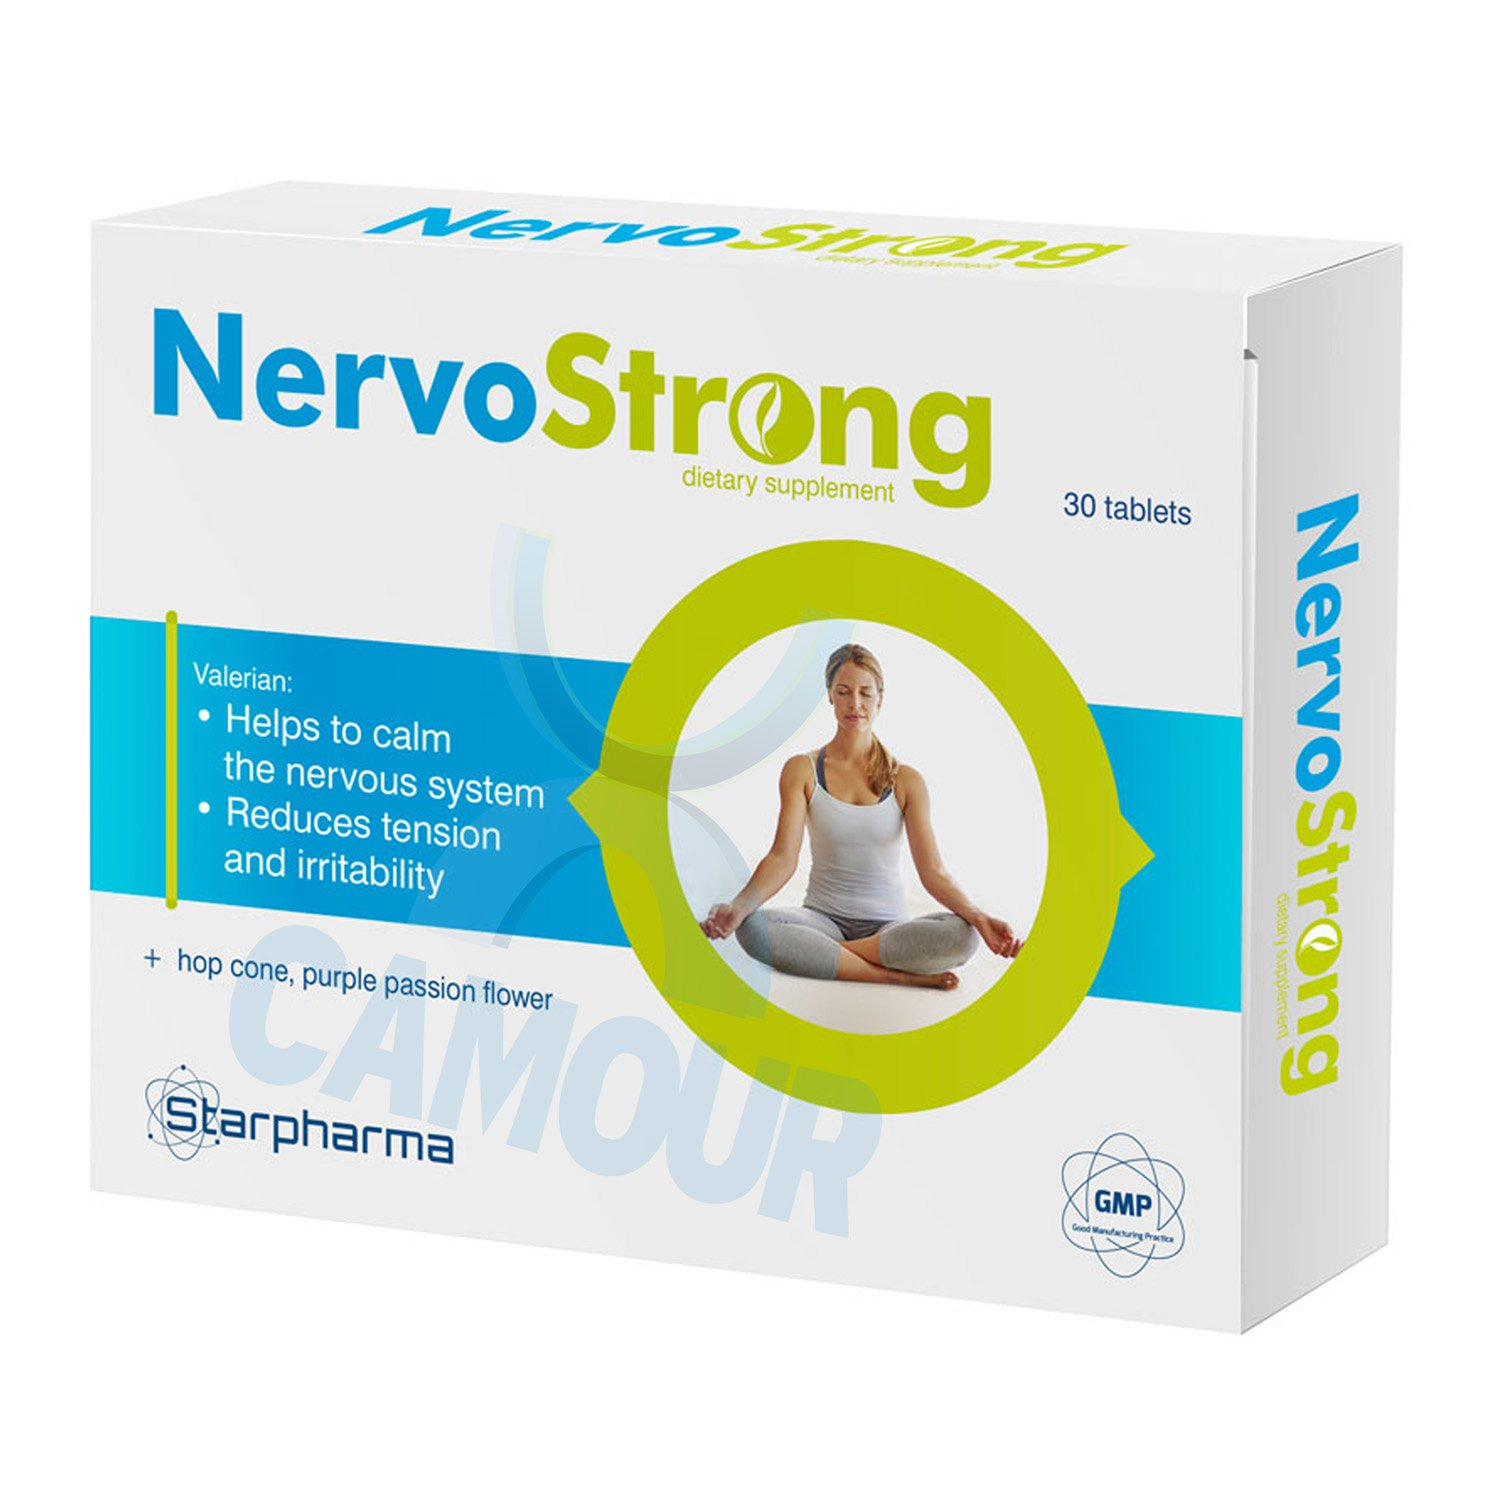 Starpharma NervoStrong Food Supplement to Calm Nervous System Reduces Tension